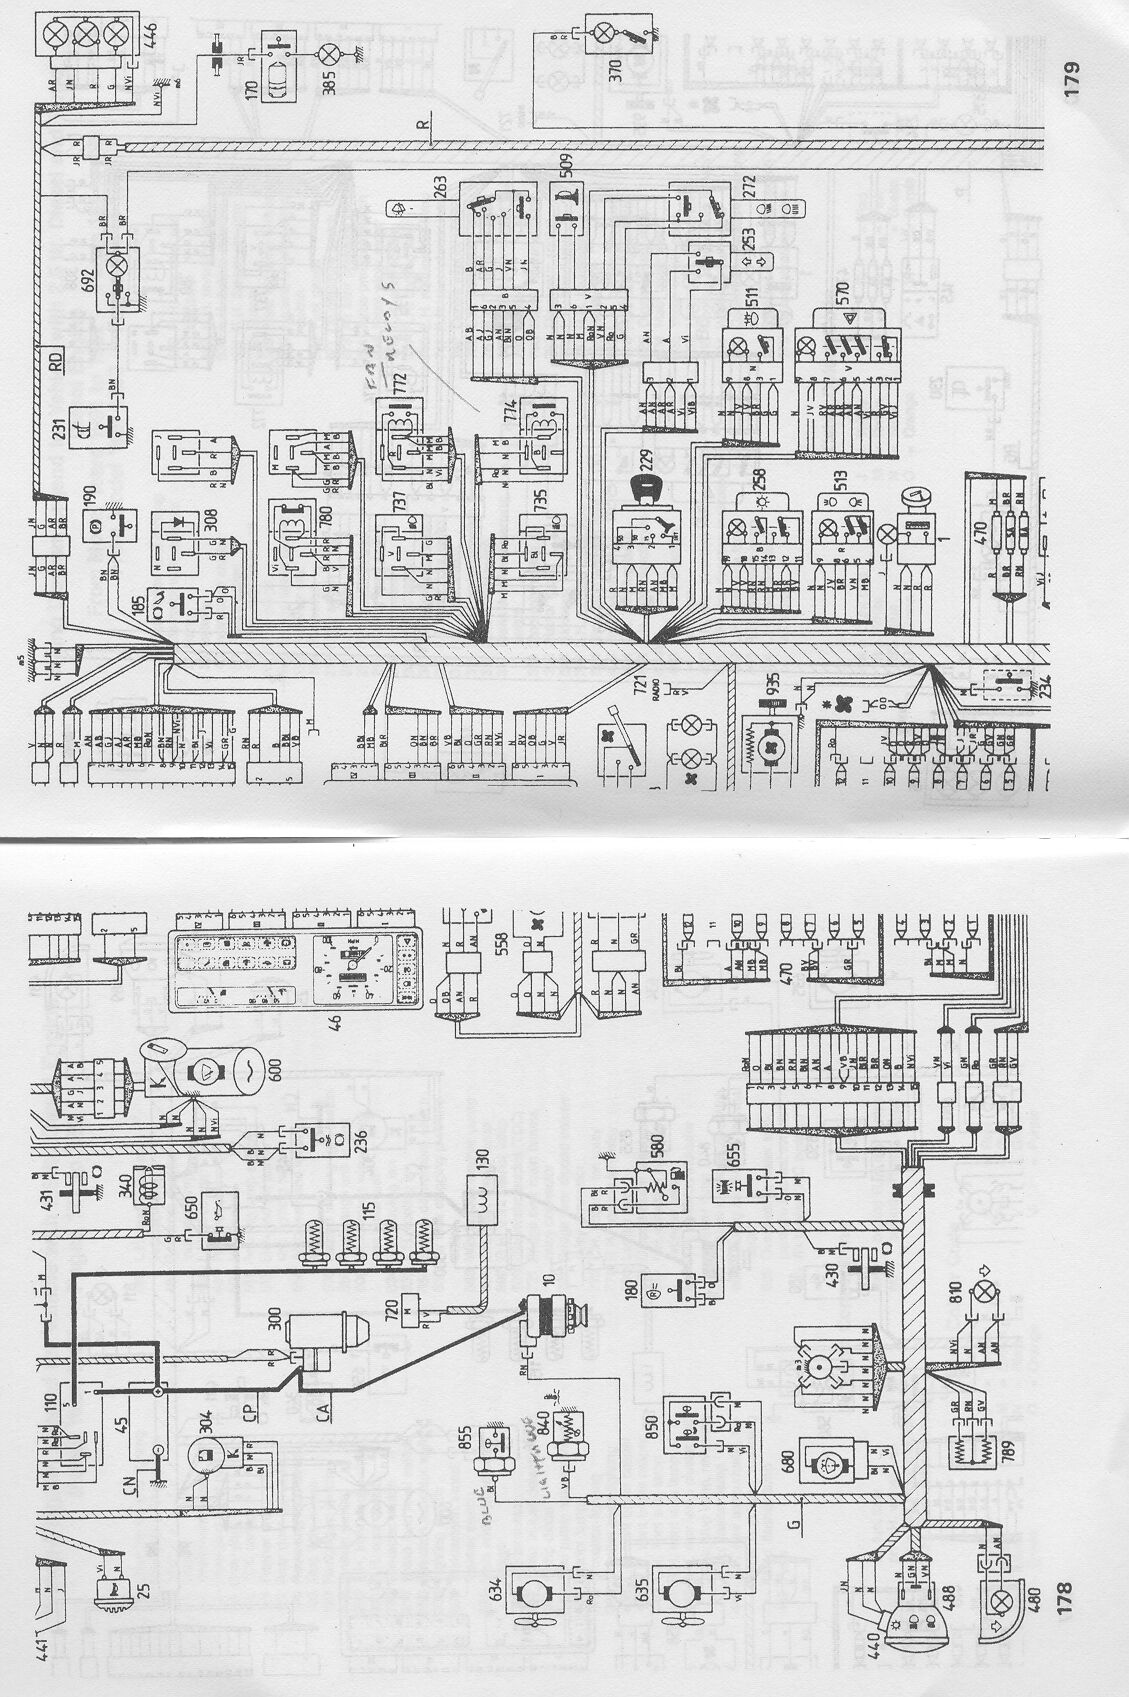 Fiat X250 Wiring Diagram Library Ducato Diagrams Peugeot Jeep 3 0